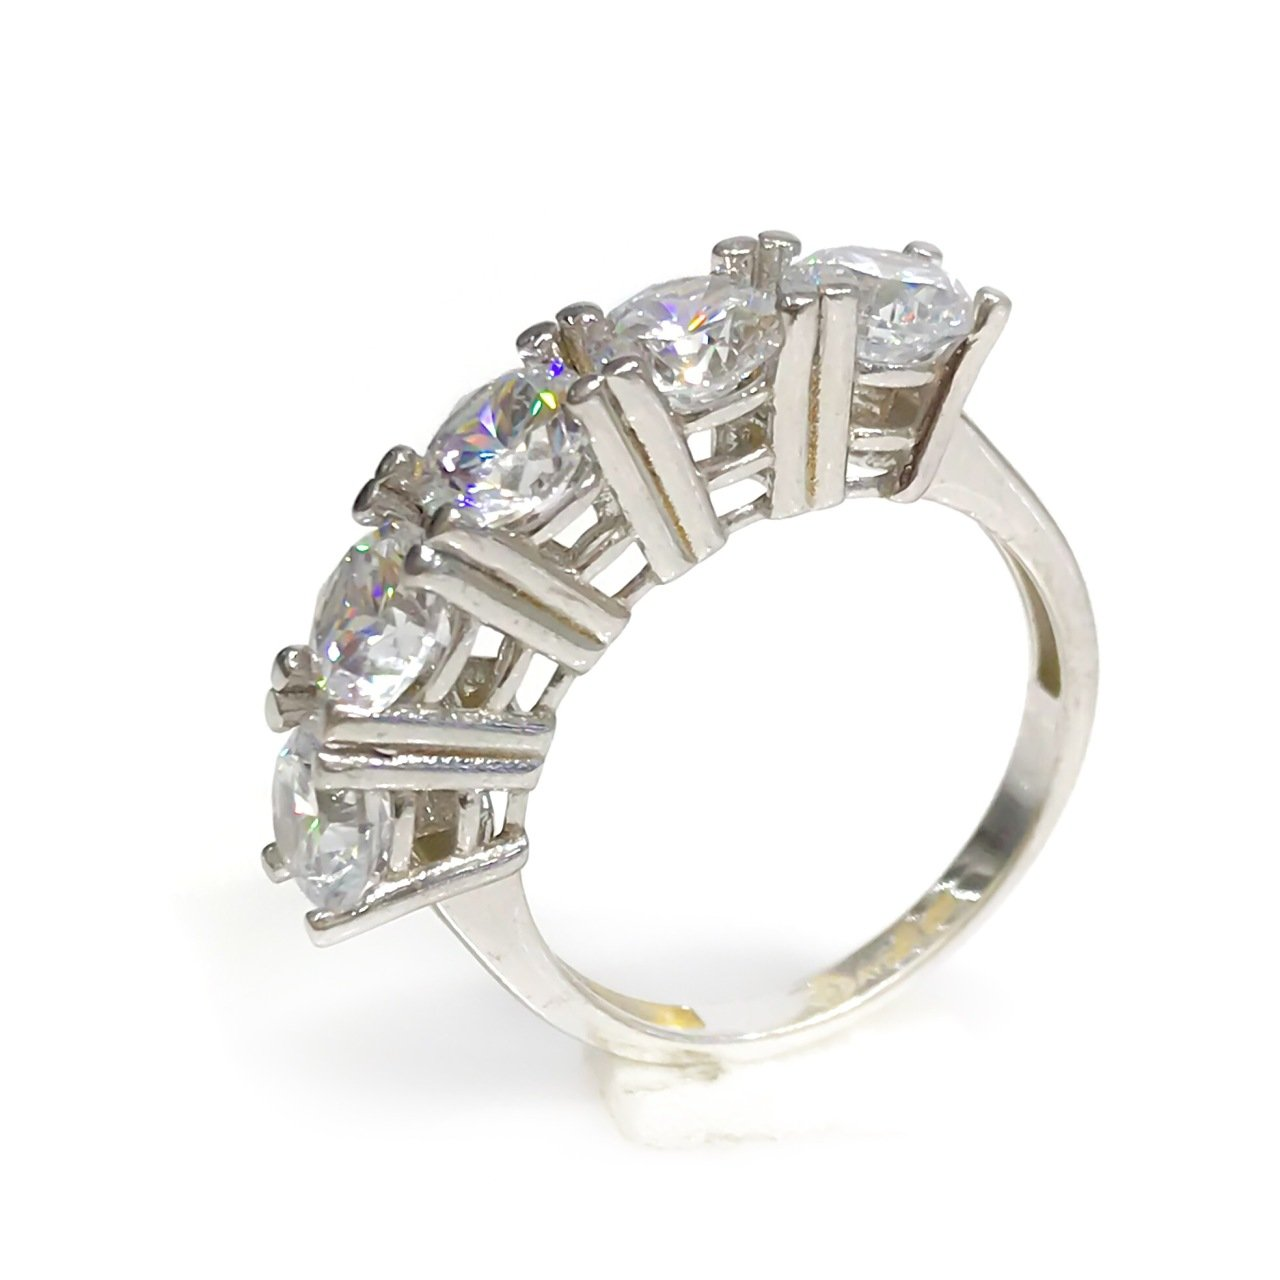 5 dibs Diamond Montür Showy White Gold Wedding Band Ring()